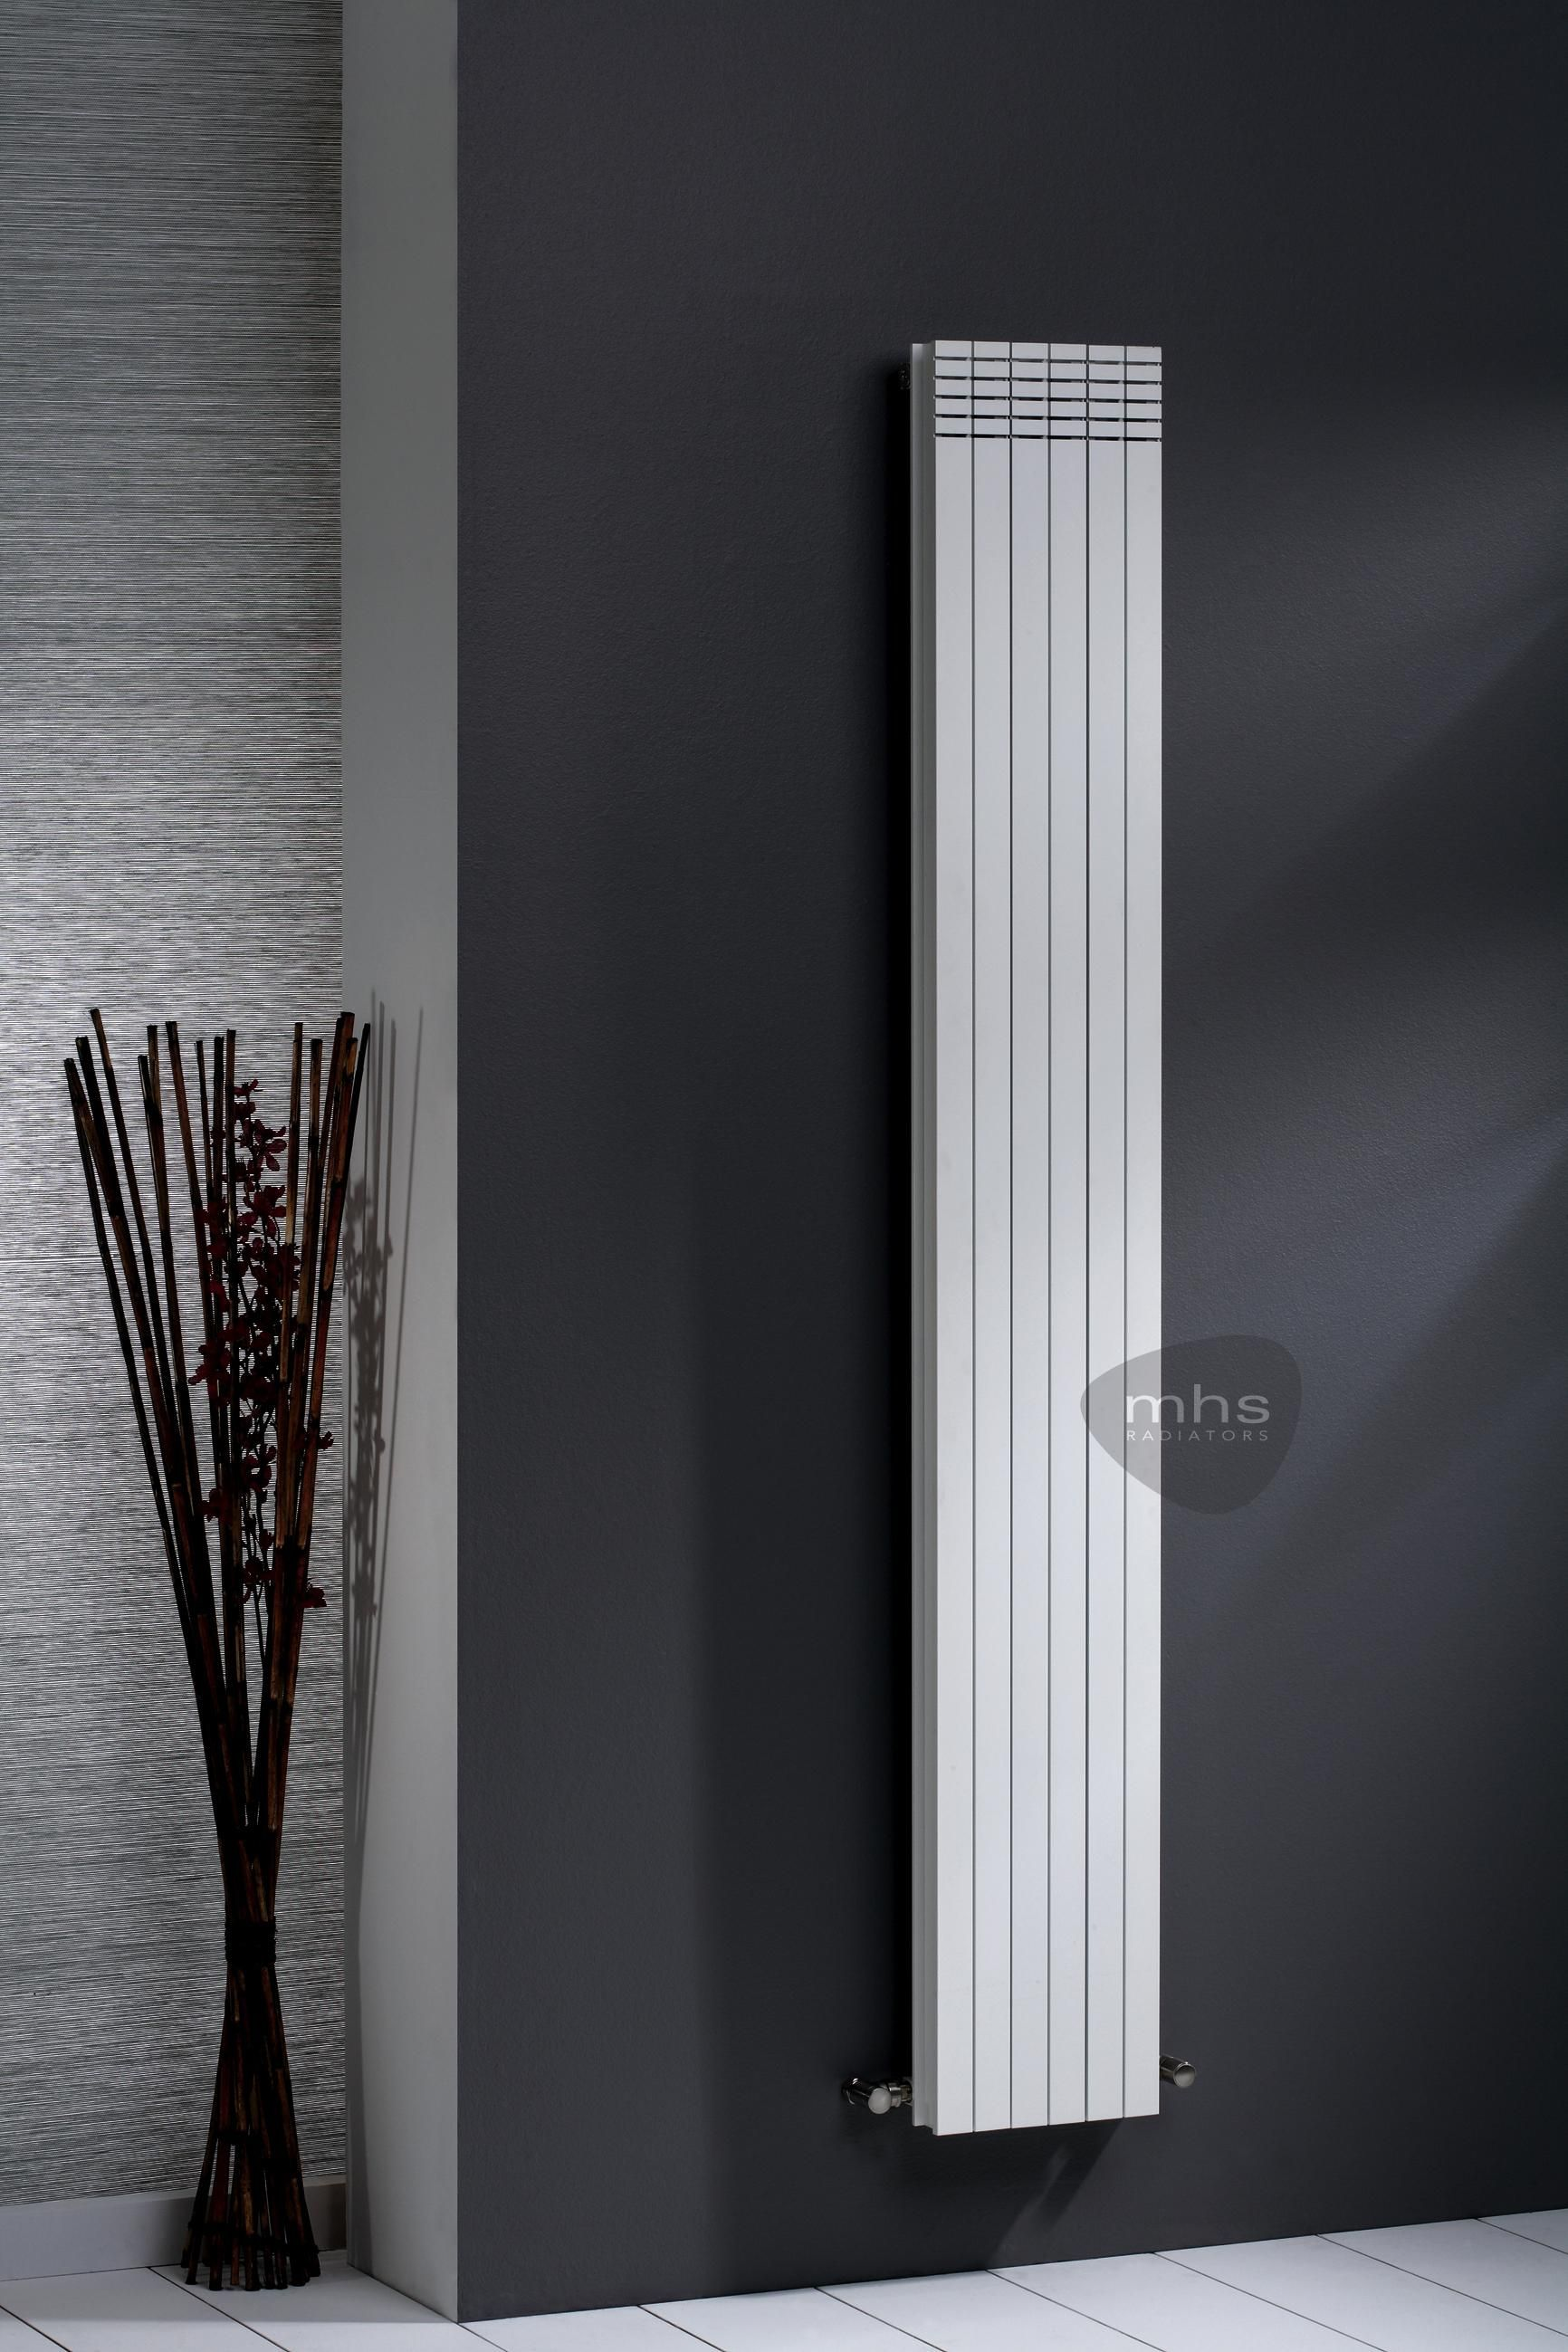 Mhs Minimal Vertical Aluminium Ultra Modern Radiator By Radiators Cast Iron Period